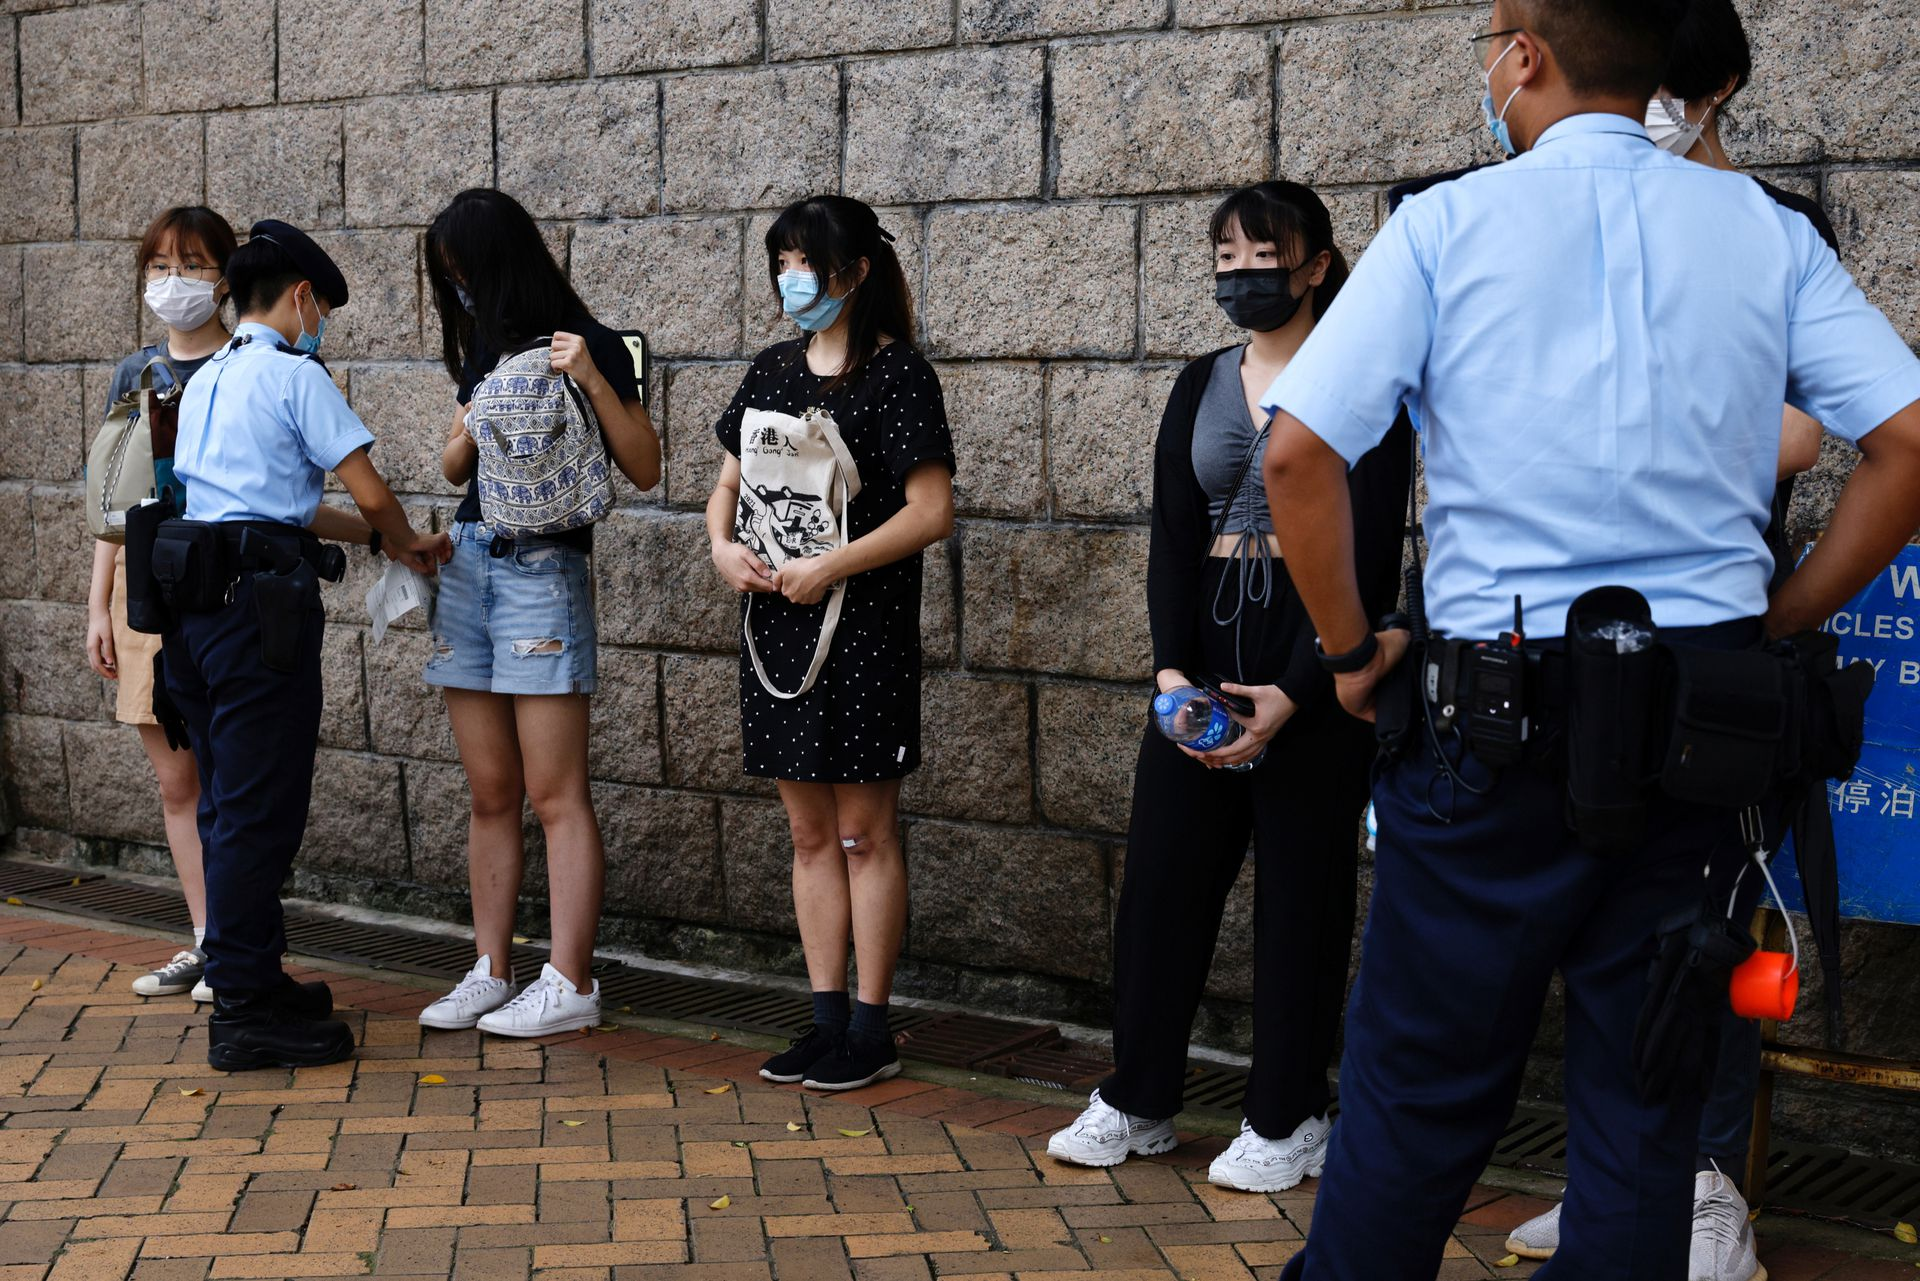 US expresses serious concern over continued erosion of human rights in Hong Kong